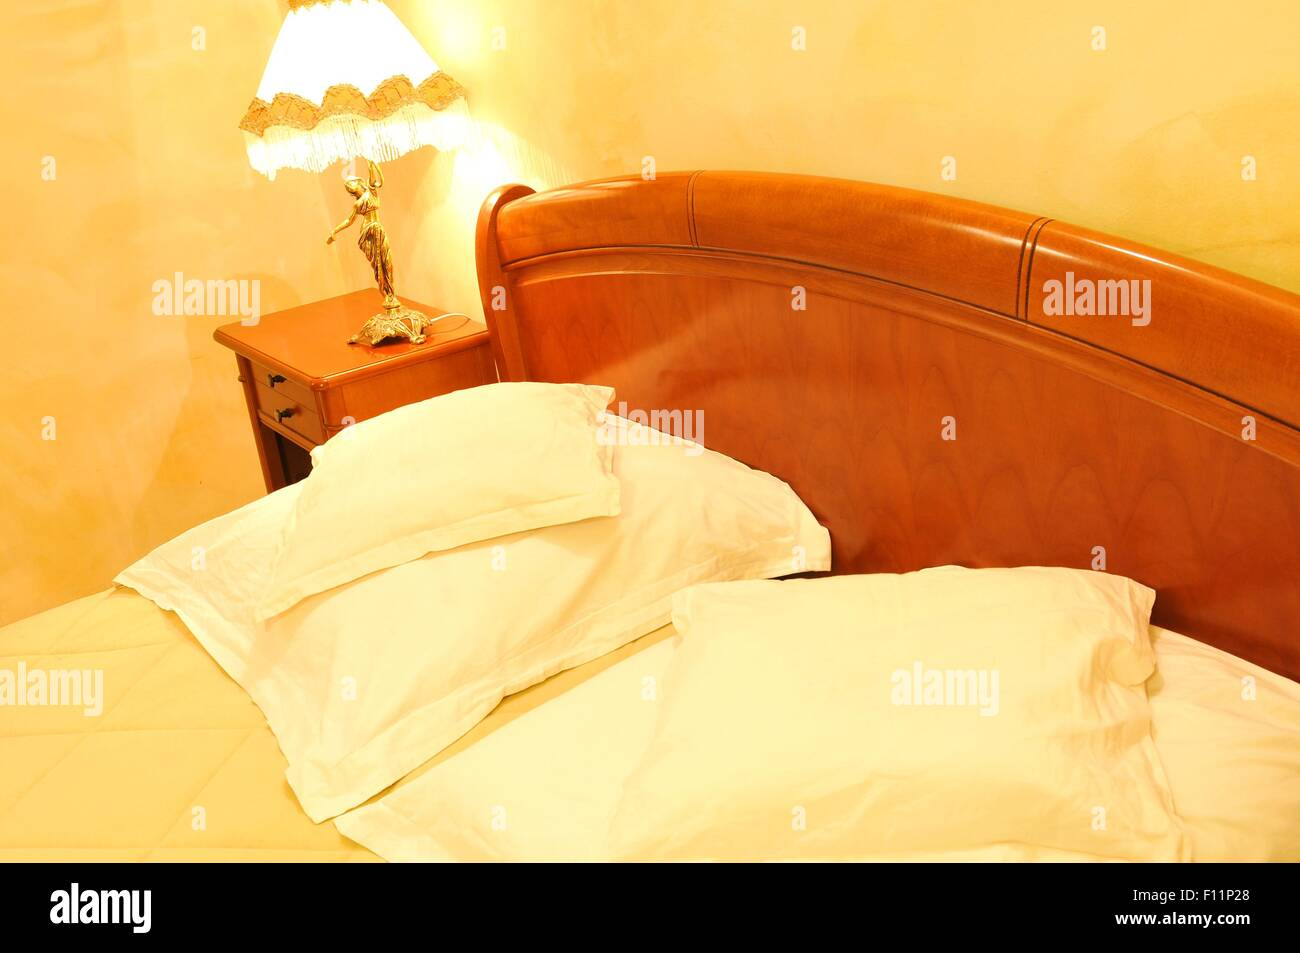 Vintage hotel detail with lampshade by the bed - Stock Image